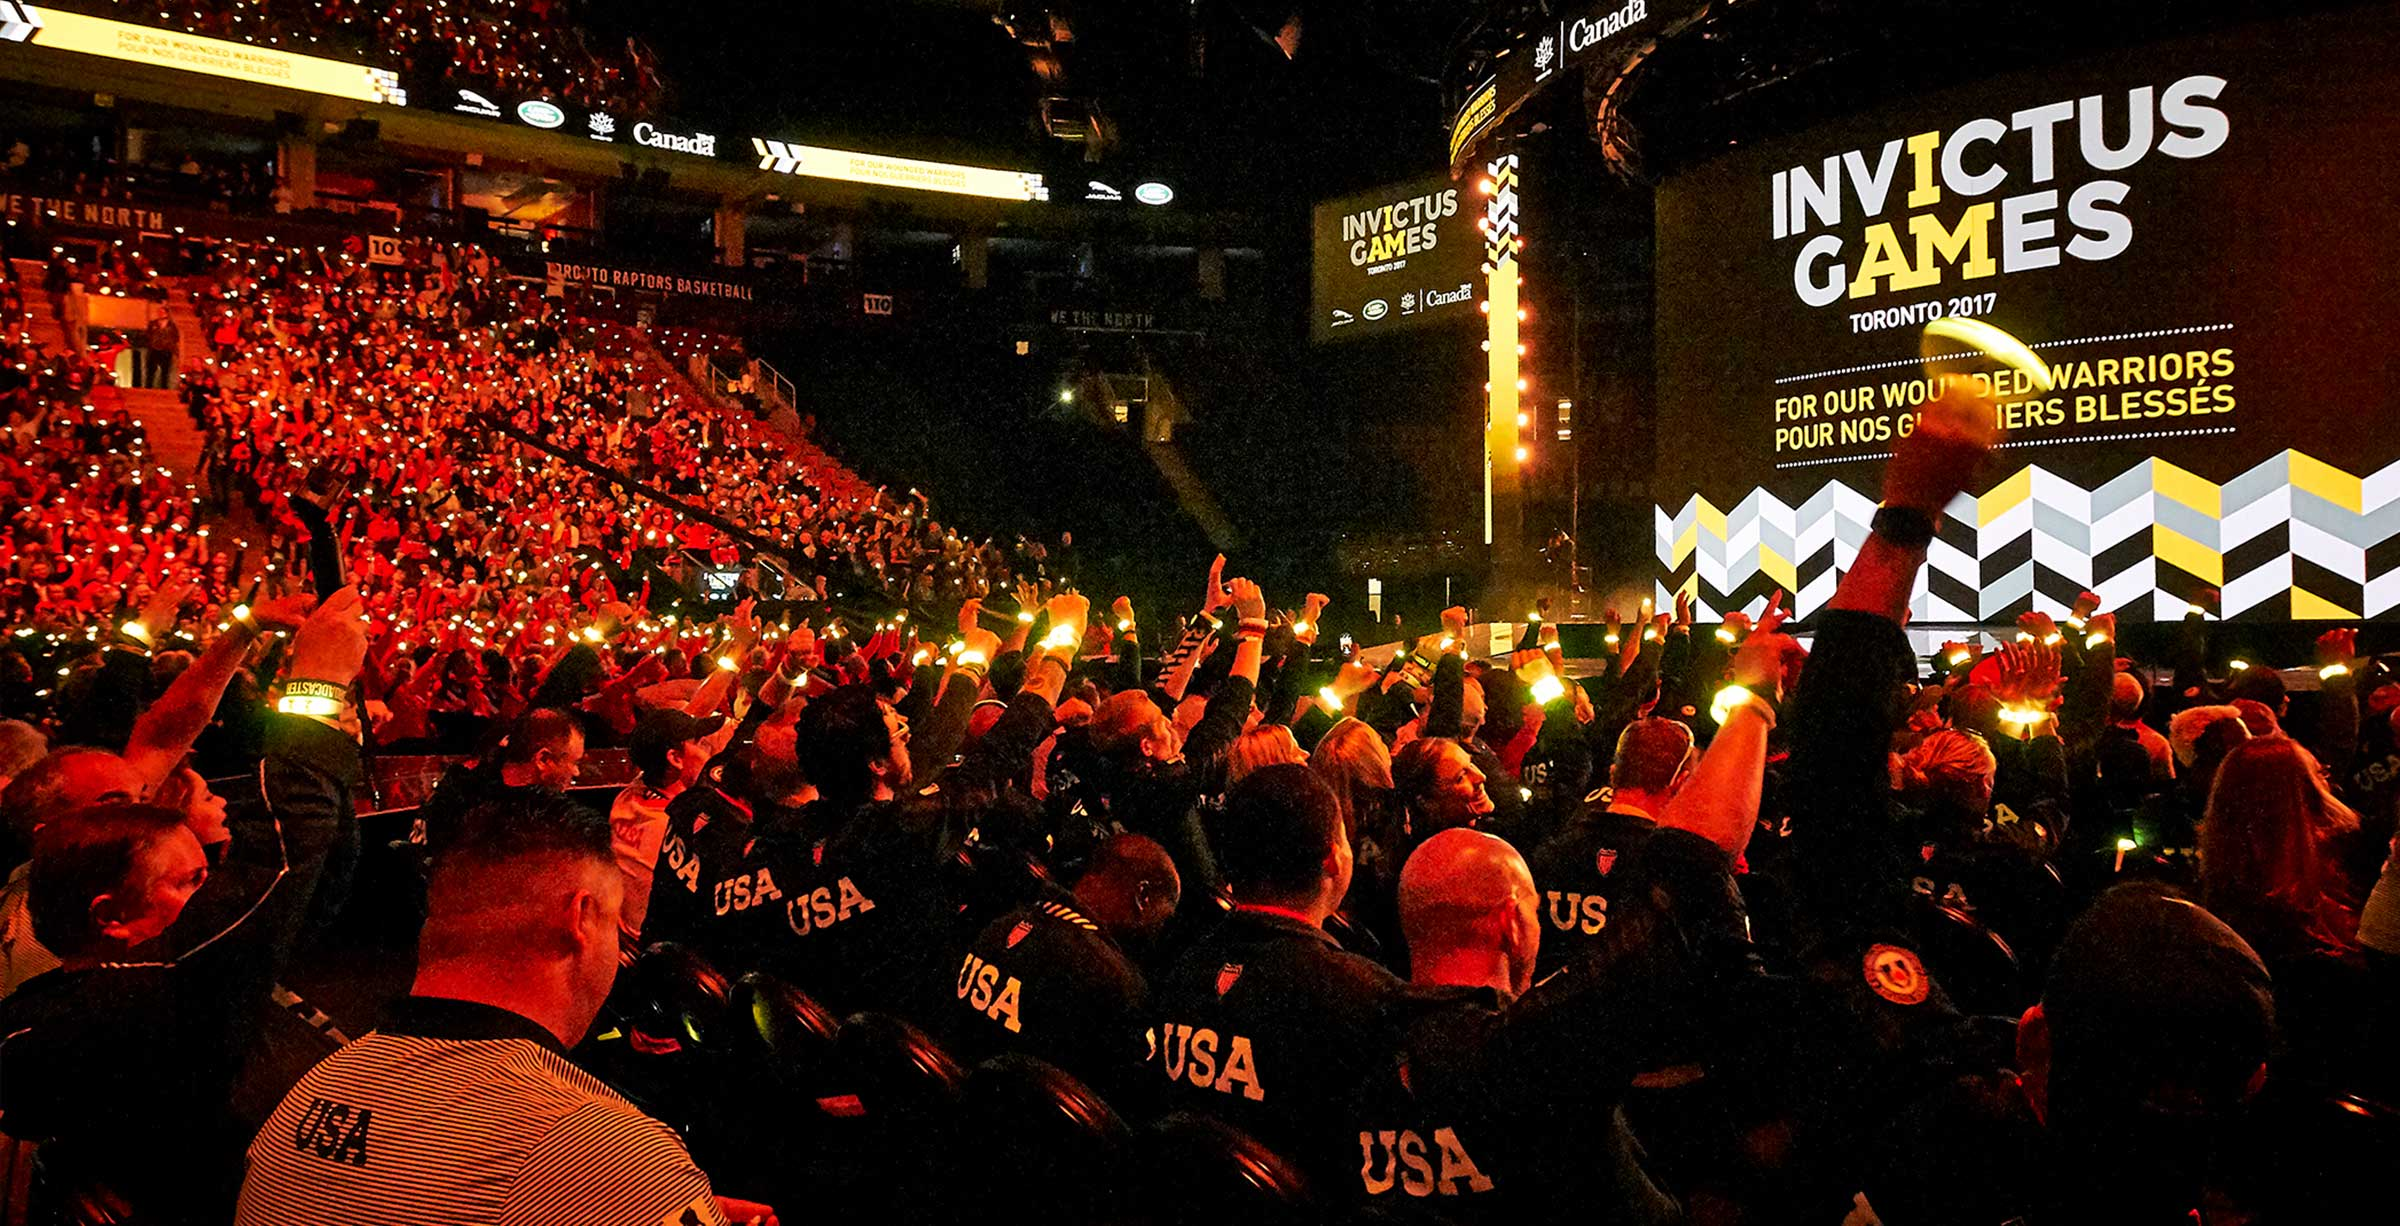 The 2017 Invictus Games closing ceremony